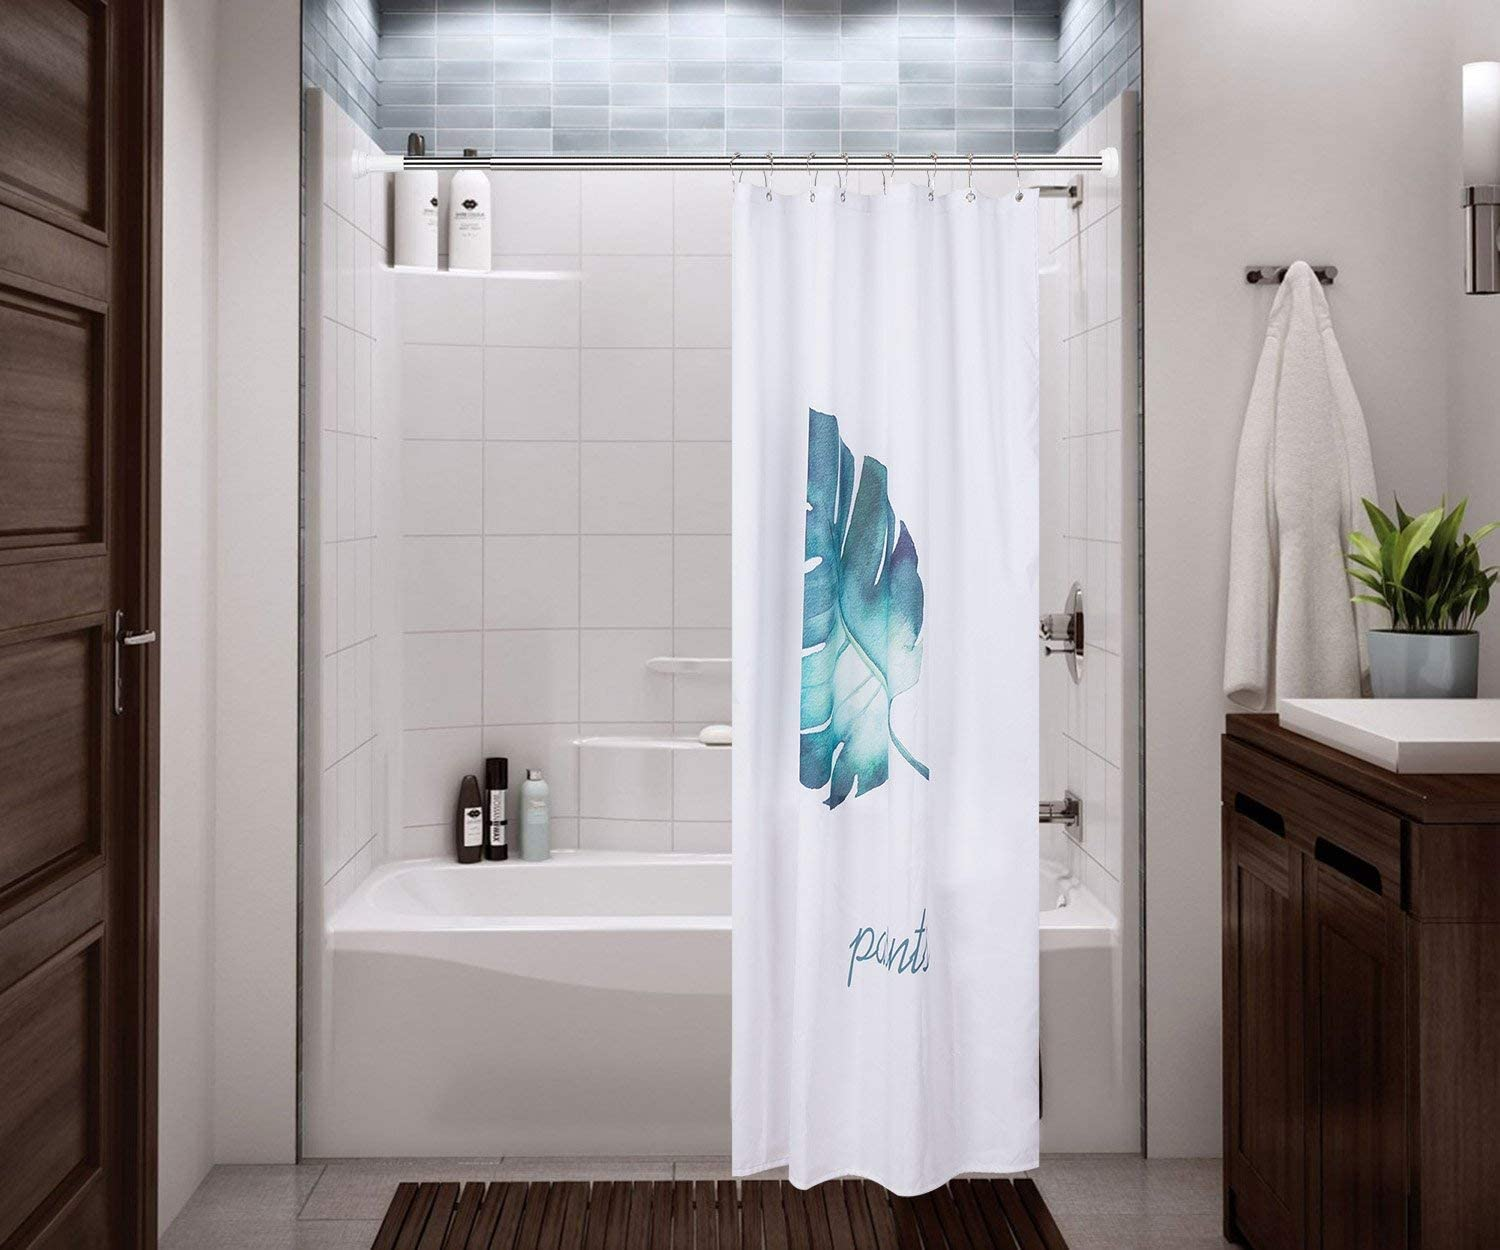 Shower Curtain Rod Adjustable Spring Tension Rust Proof No